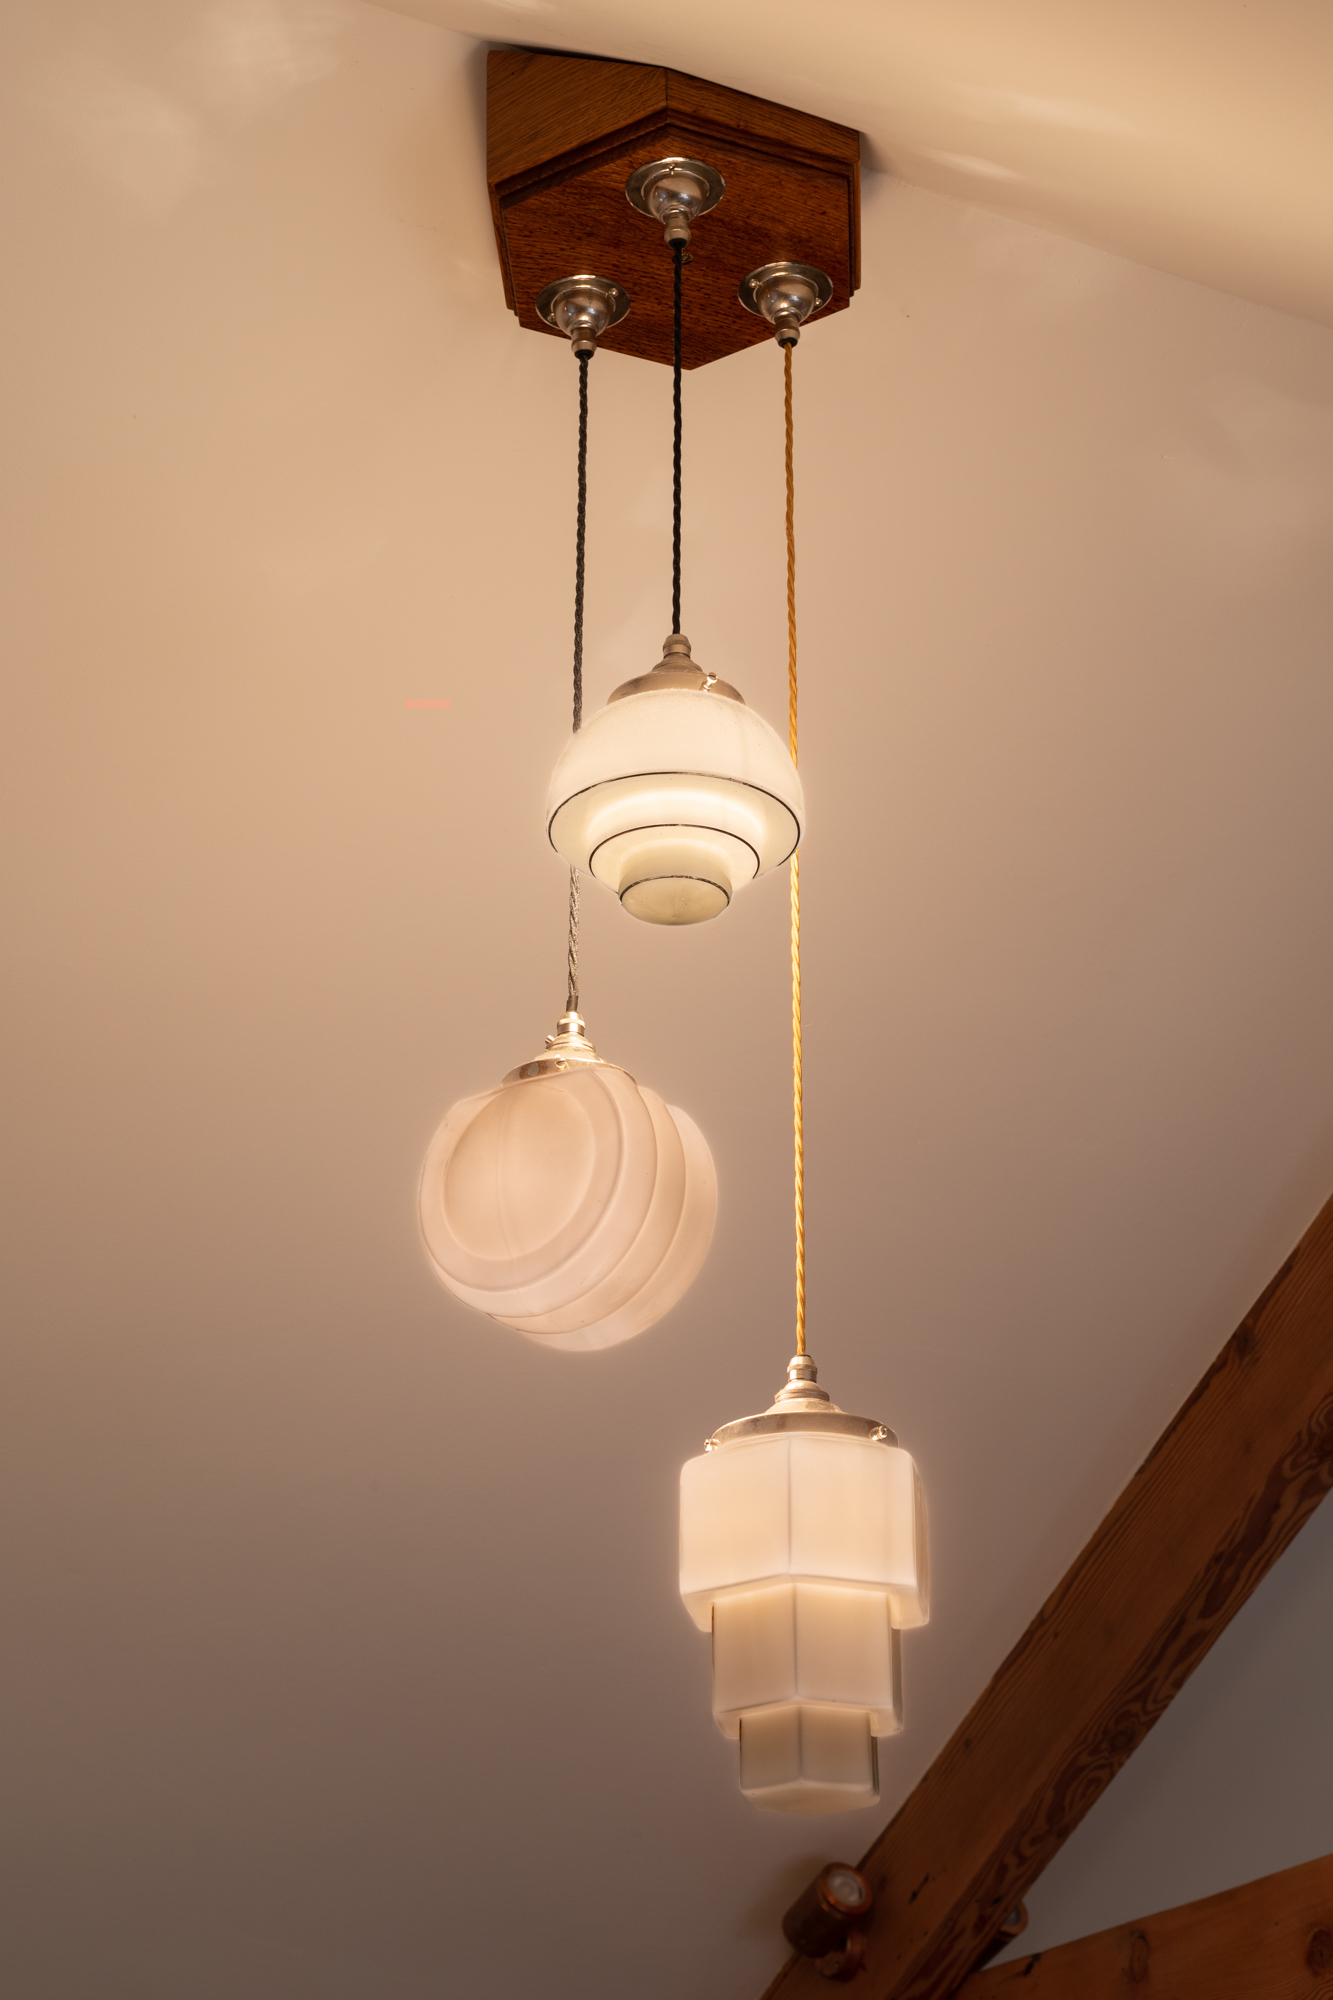 eleanor-bell-resdiential-lighting-cornwall-art-deco-pendants.jpg